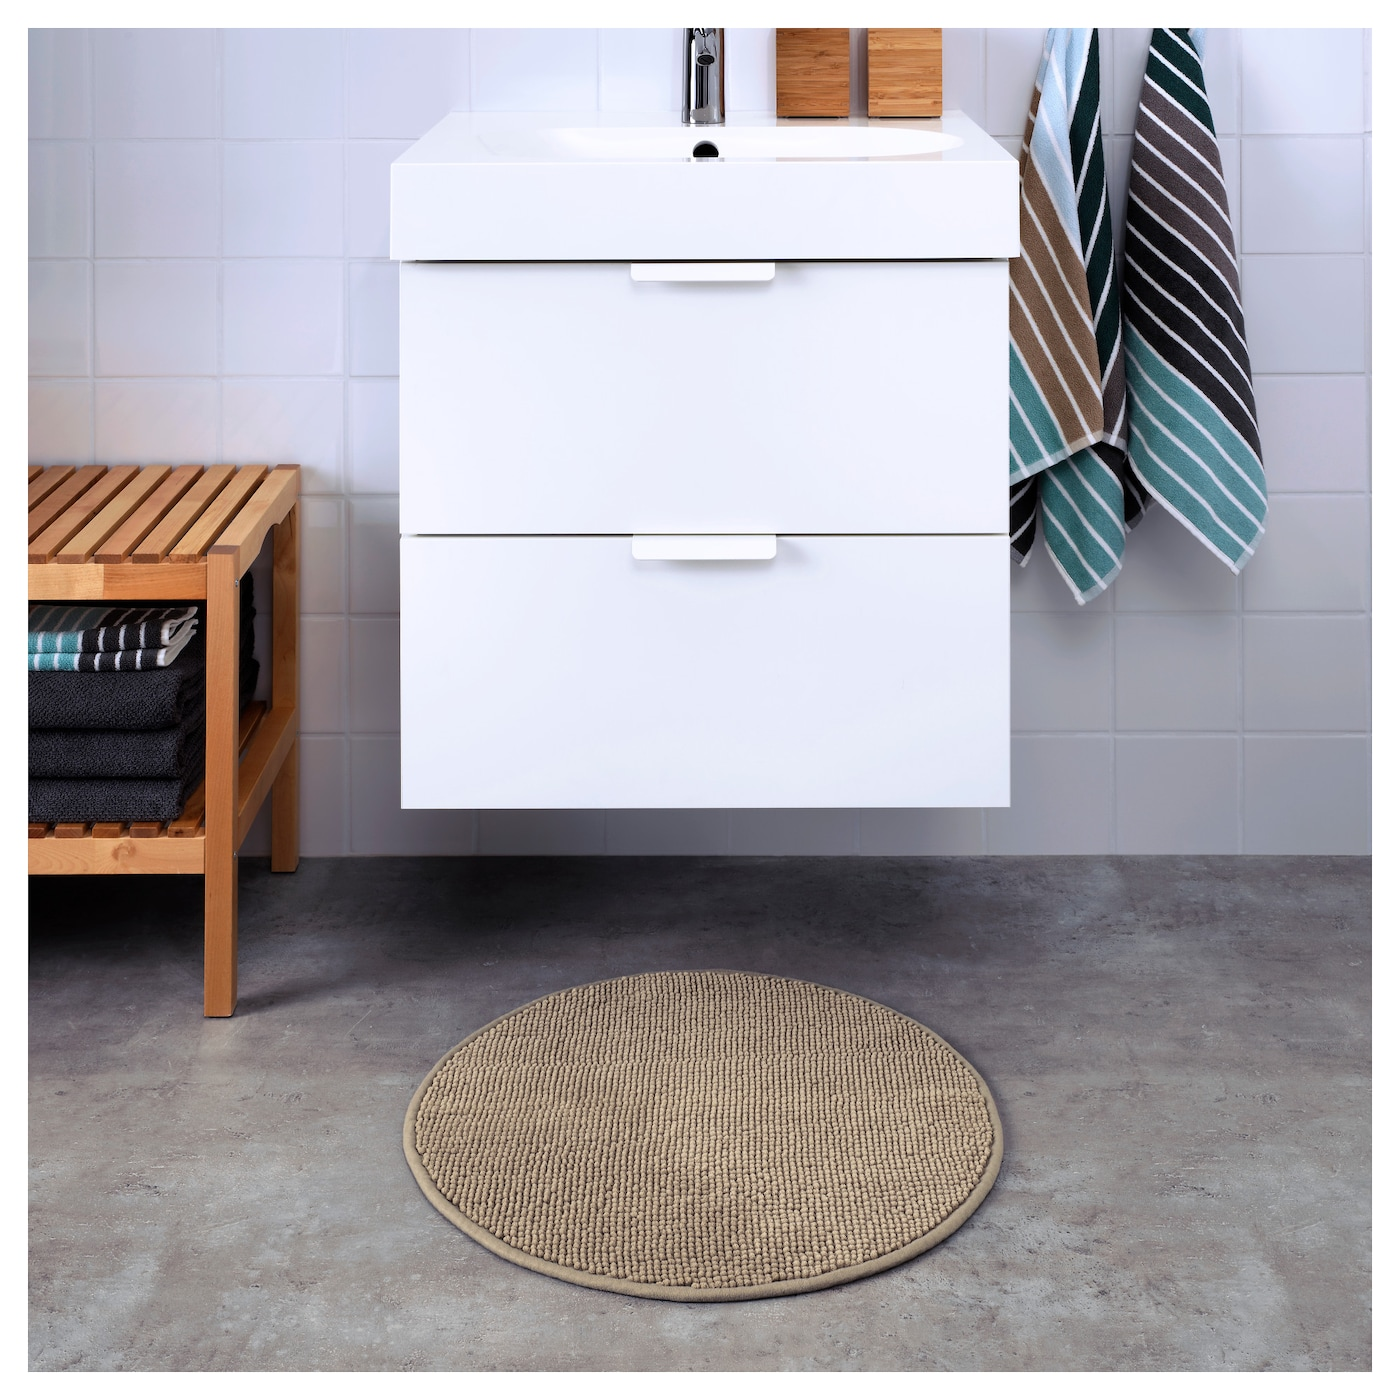 IKEA BADAREN bath mat Ultra soft, absorbent and quick to dry since it's made of microfibre.